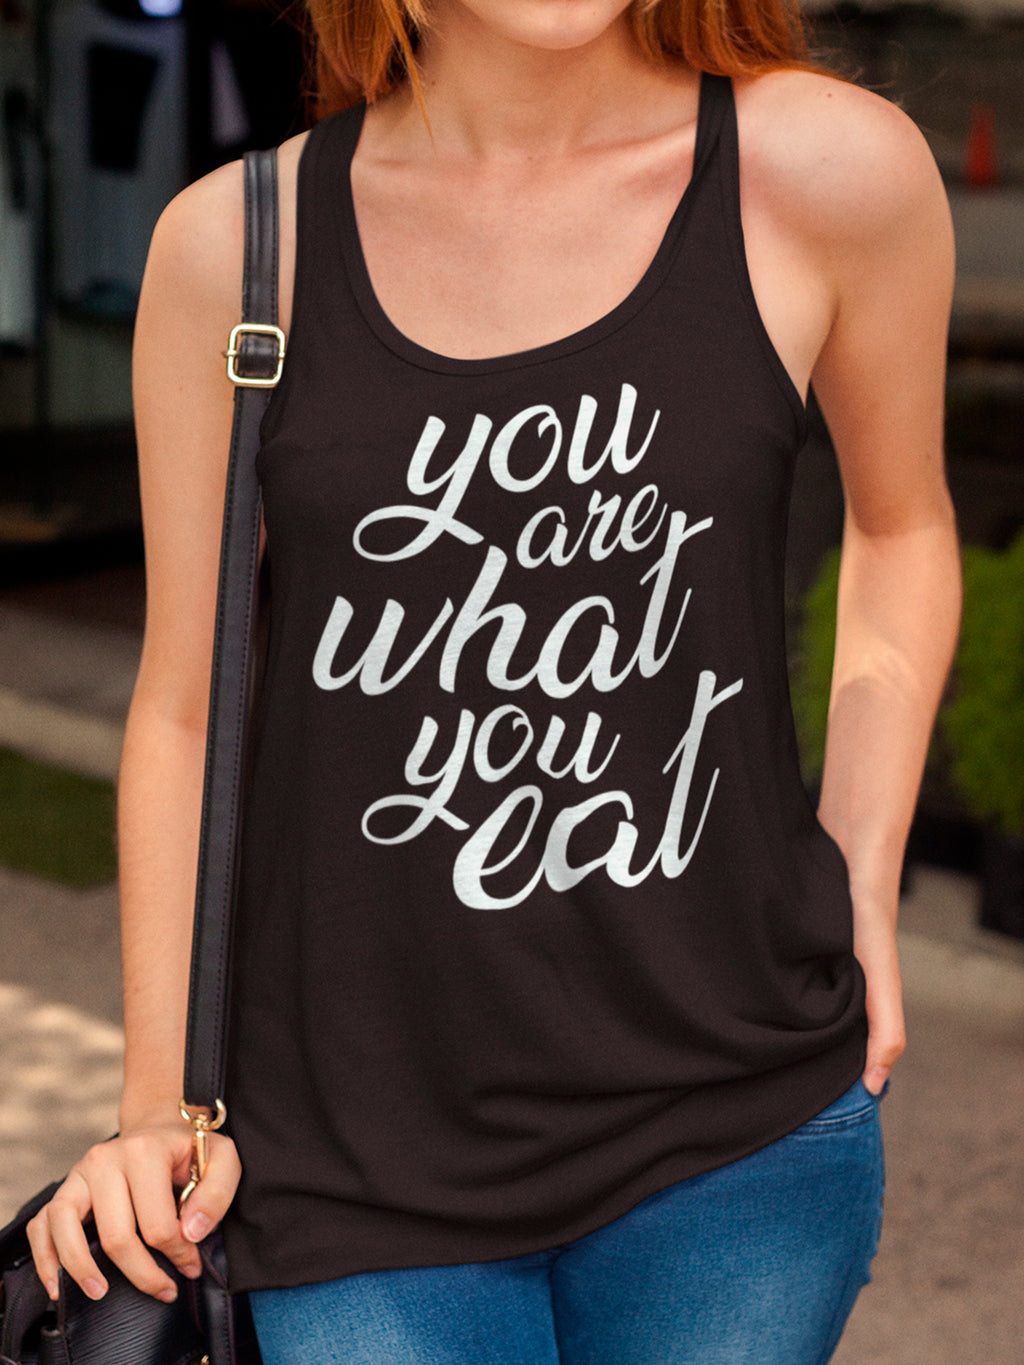 You are what you eat - Woman's vegan tank top